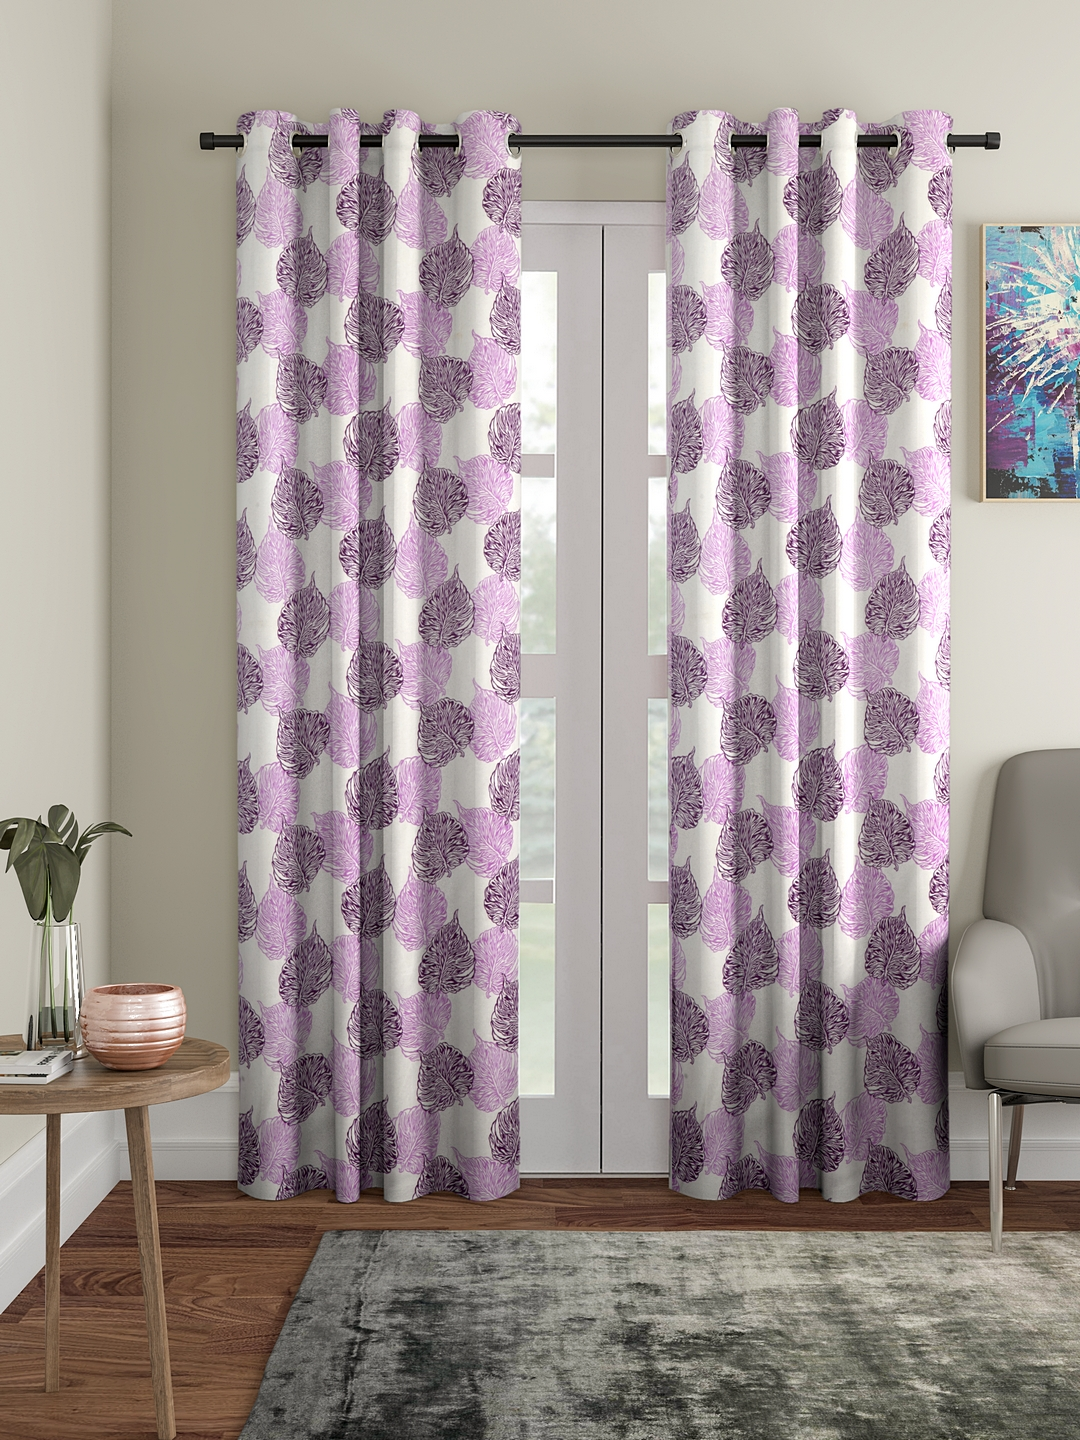 Polyester Plain Printed Door Curtains for Bedroom, Kitchen, Kids or Living Room-036_Set of 2